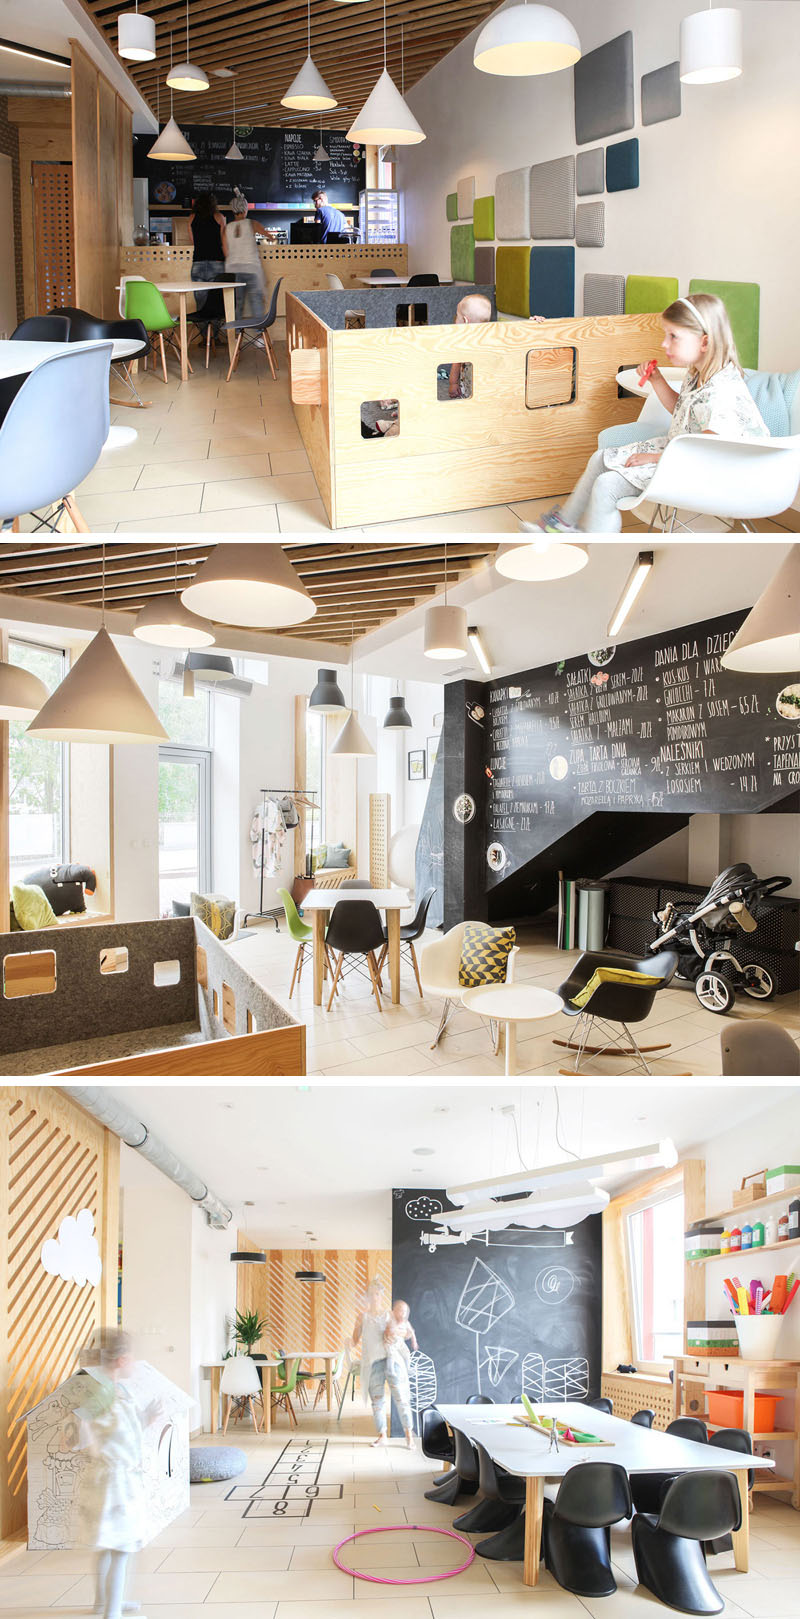 14 Creatively Designed European Cafes That Will Make You ...